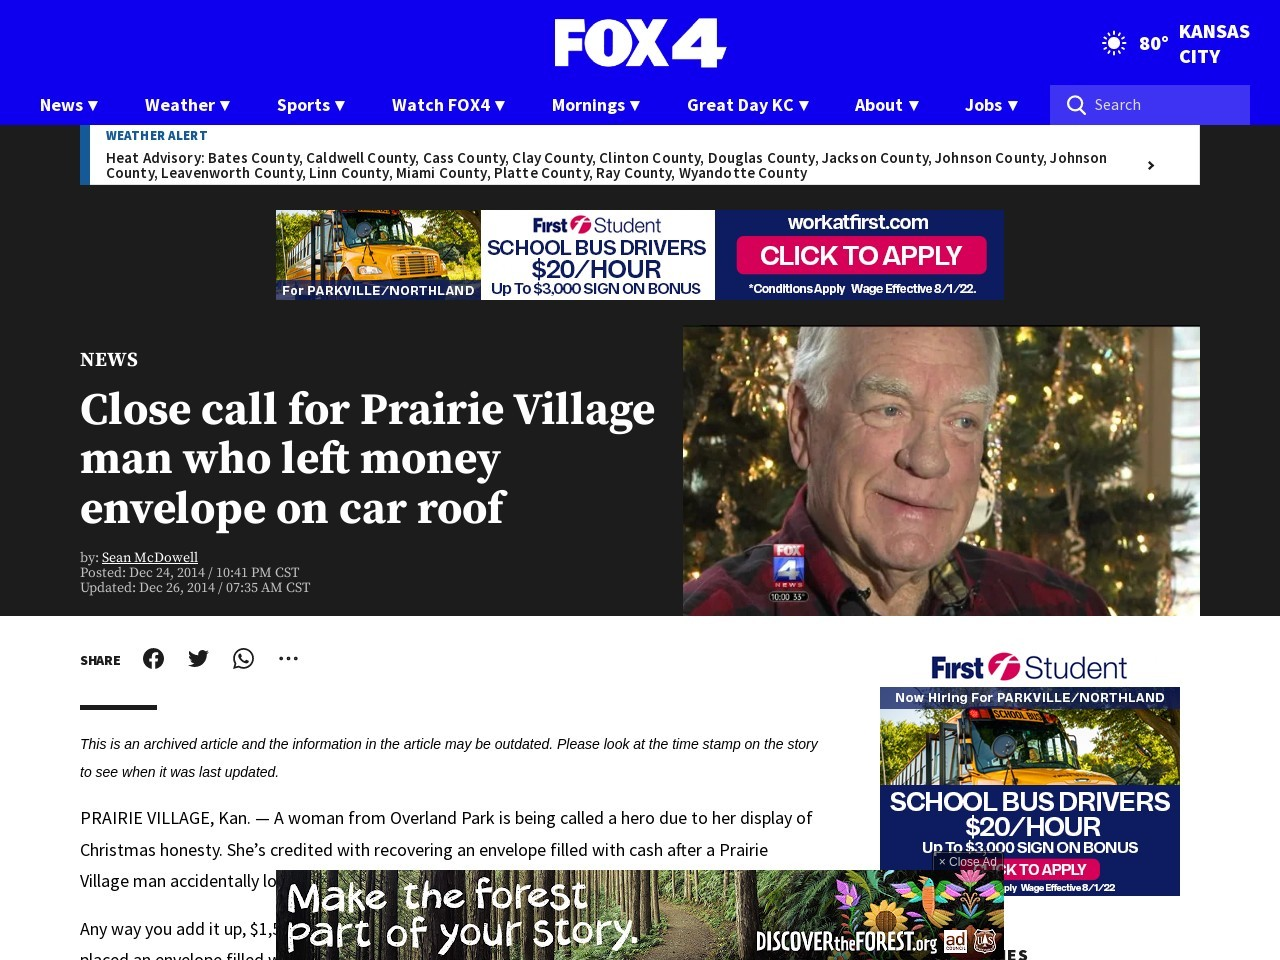 Close call for Prairie Village man who left money envelope on car roof